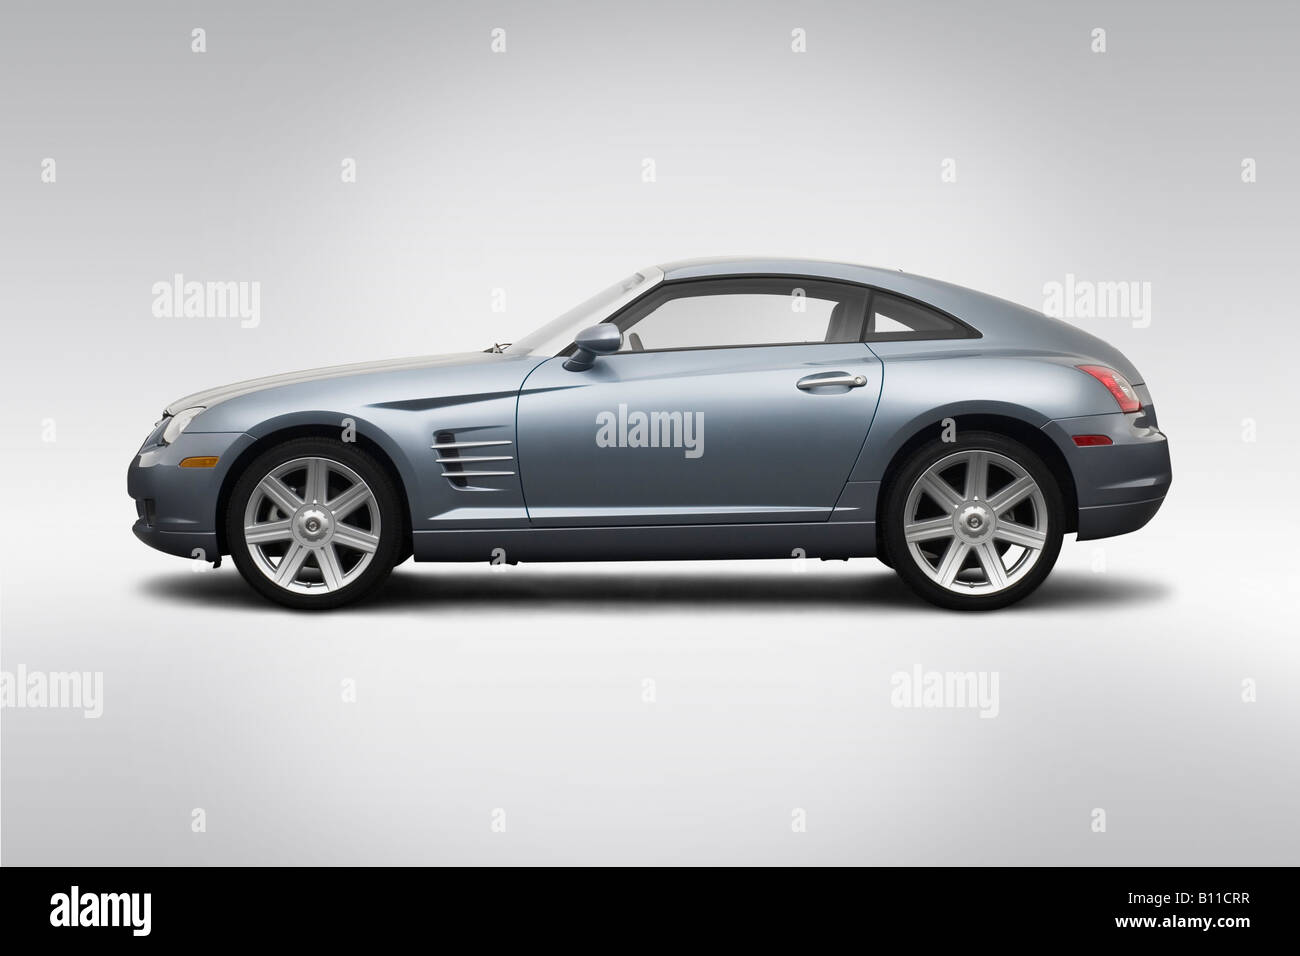 listings cc picture in by offered located holland for sale c verhage std crossfire classiccars chrysler com michigan view of large